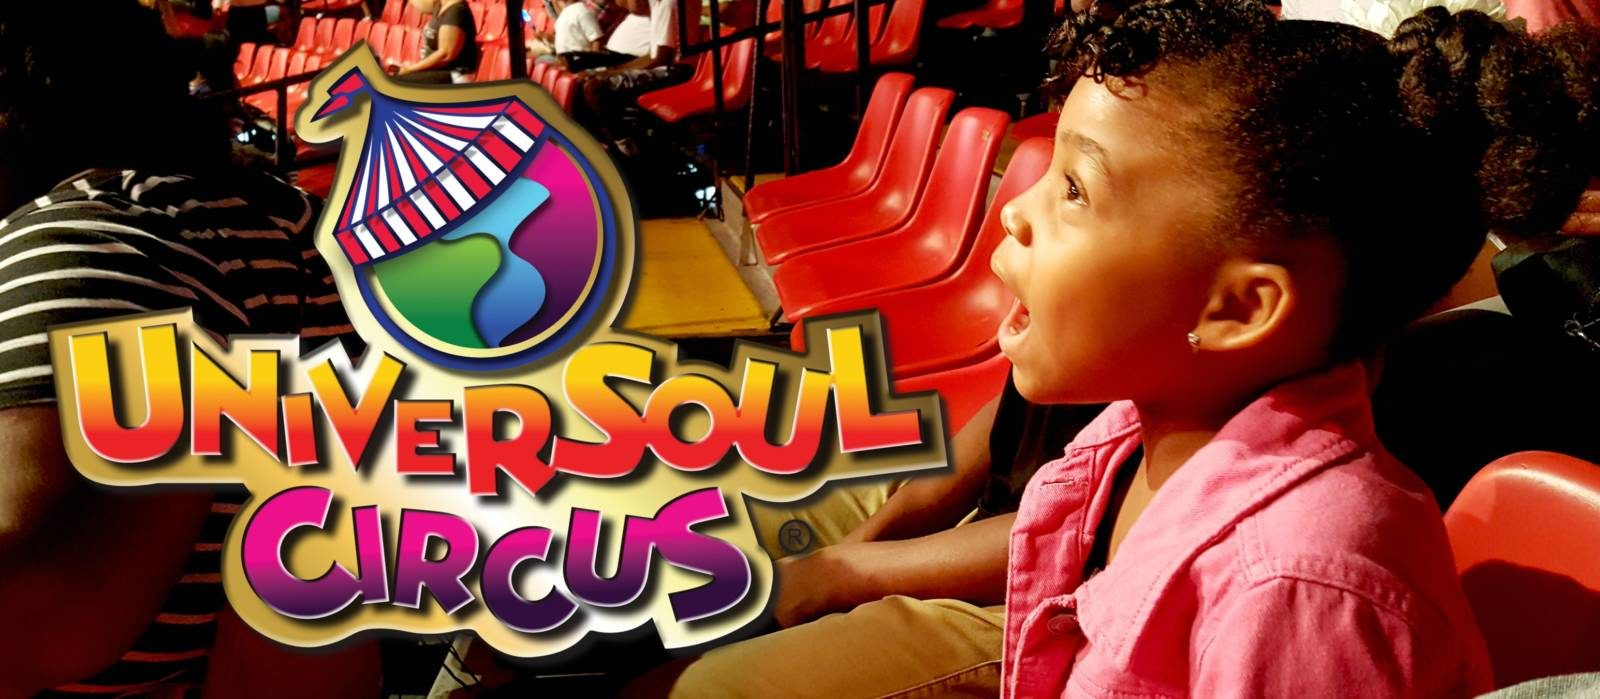 5 Reasons You NEED to go to UNIVERSOUL CIRCUS